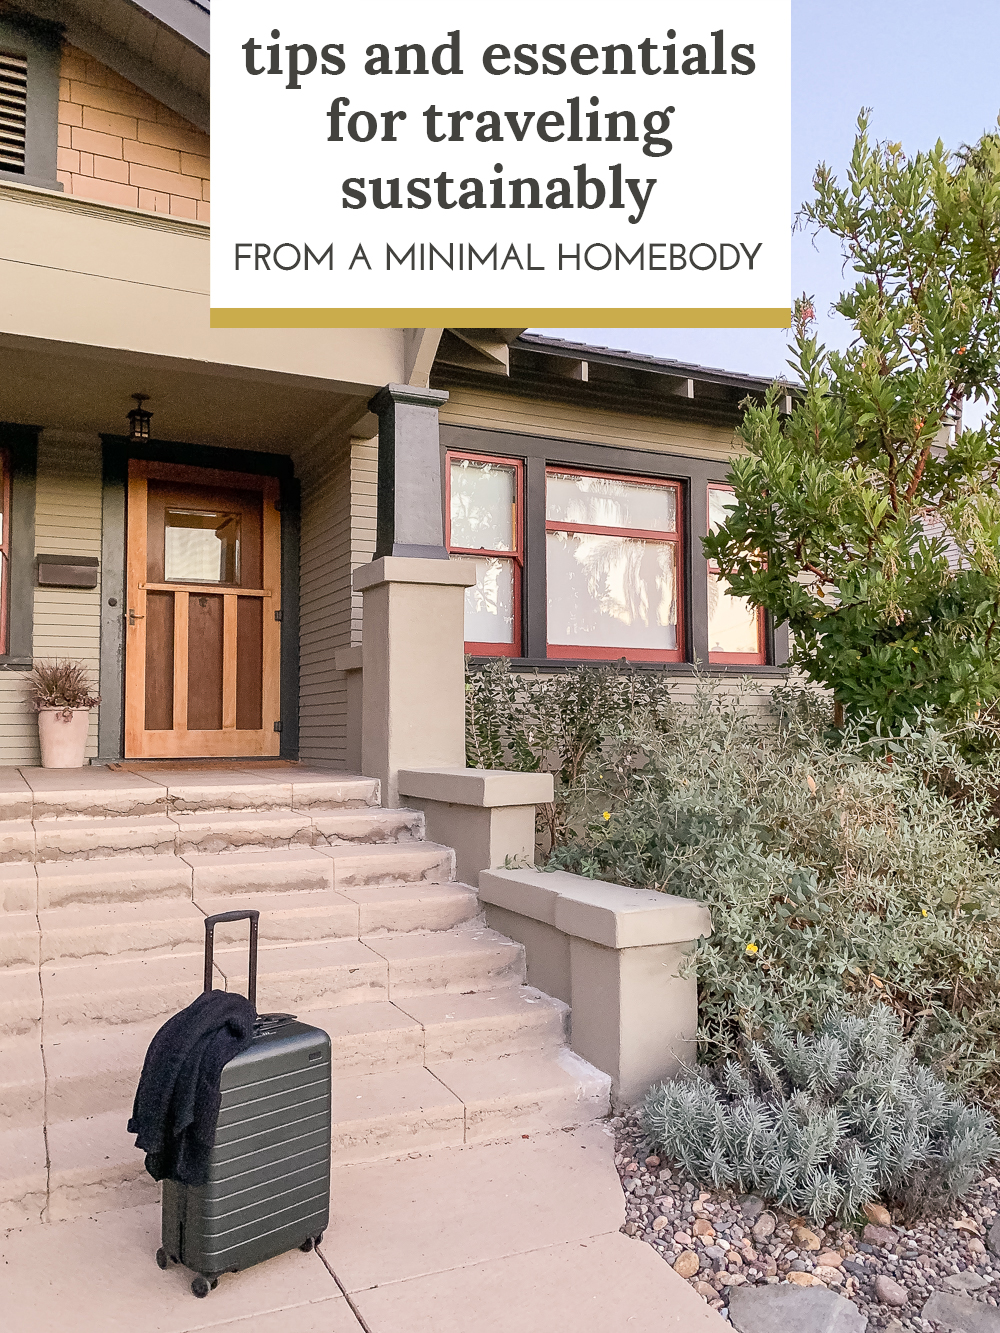 Tips and essentials for sustainable travel from a minimal homebody - The Gold Hive.jpg